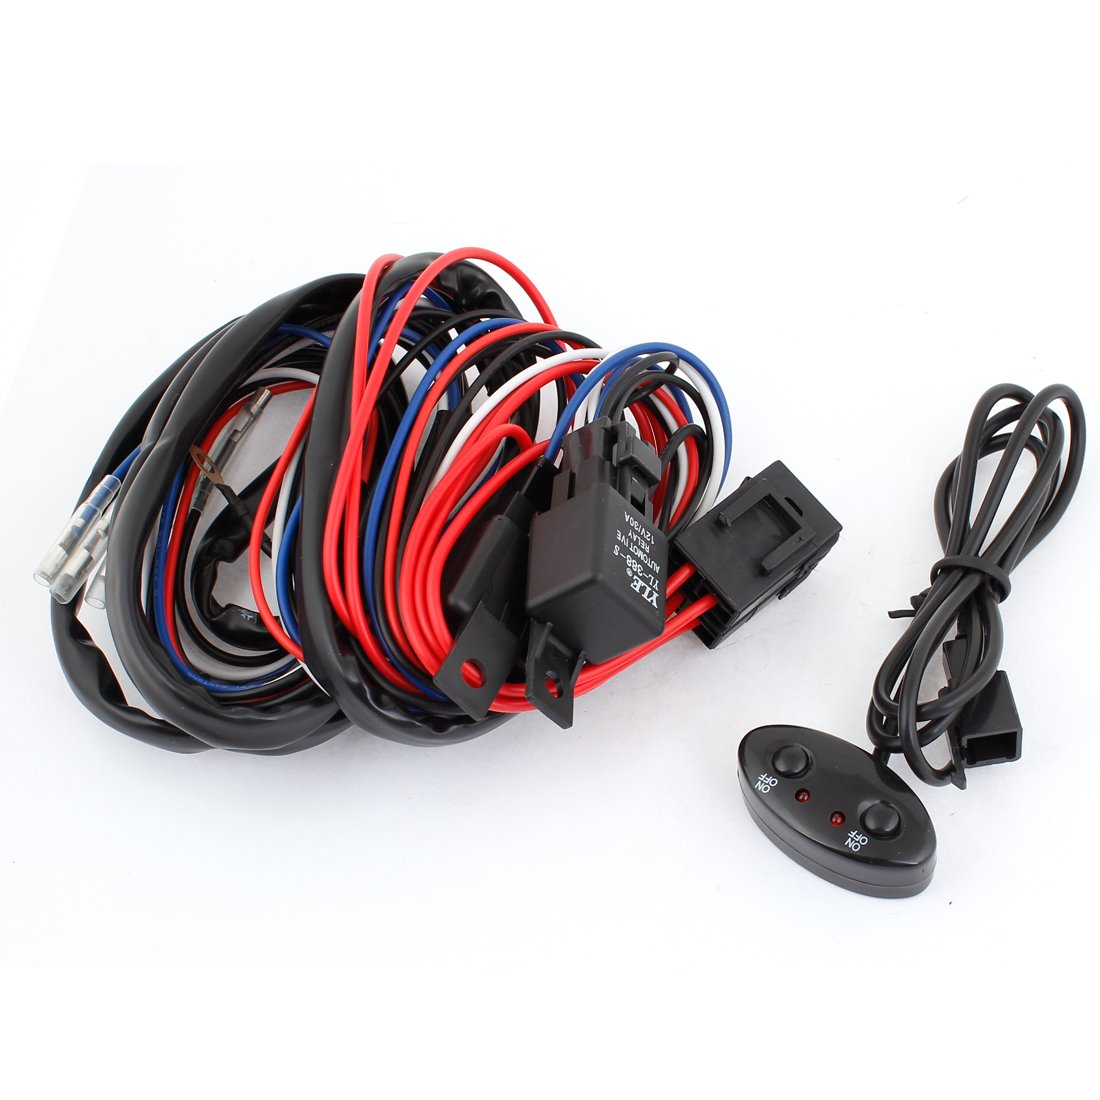 Wiring Kit Fog Light Driving Lamps Harness Fuse 2 Switch Bmw Technology Guide Relay Pigtails Sockets Amazon Canada